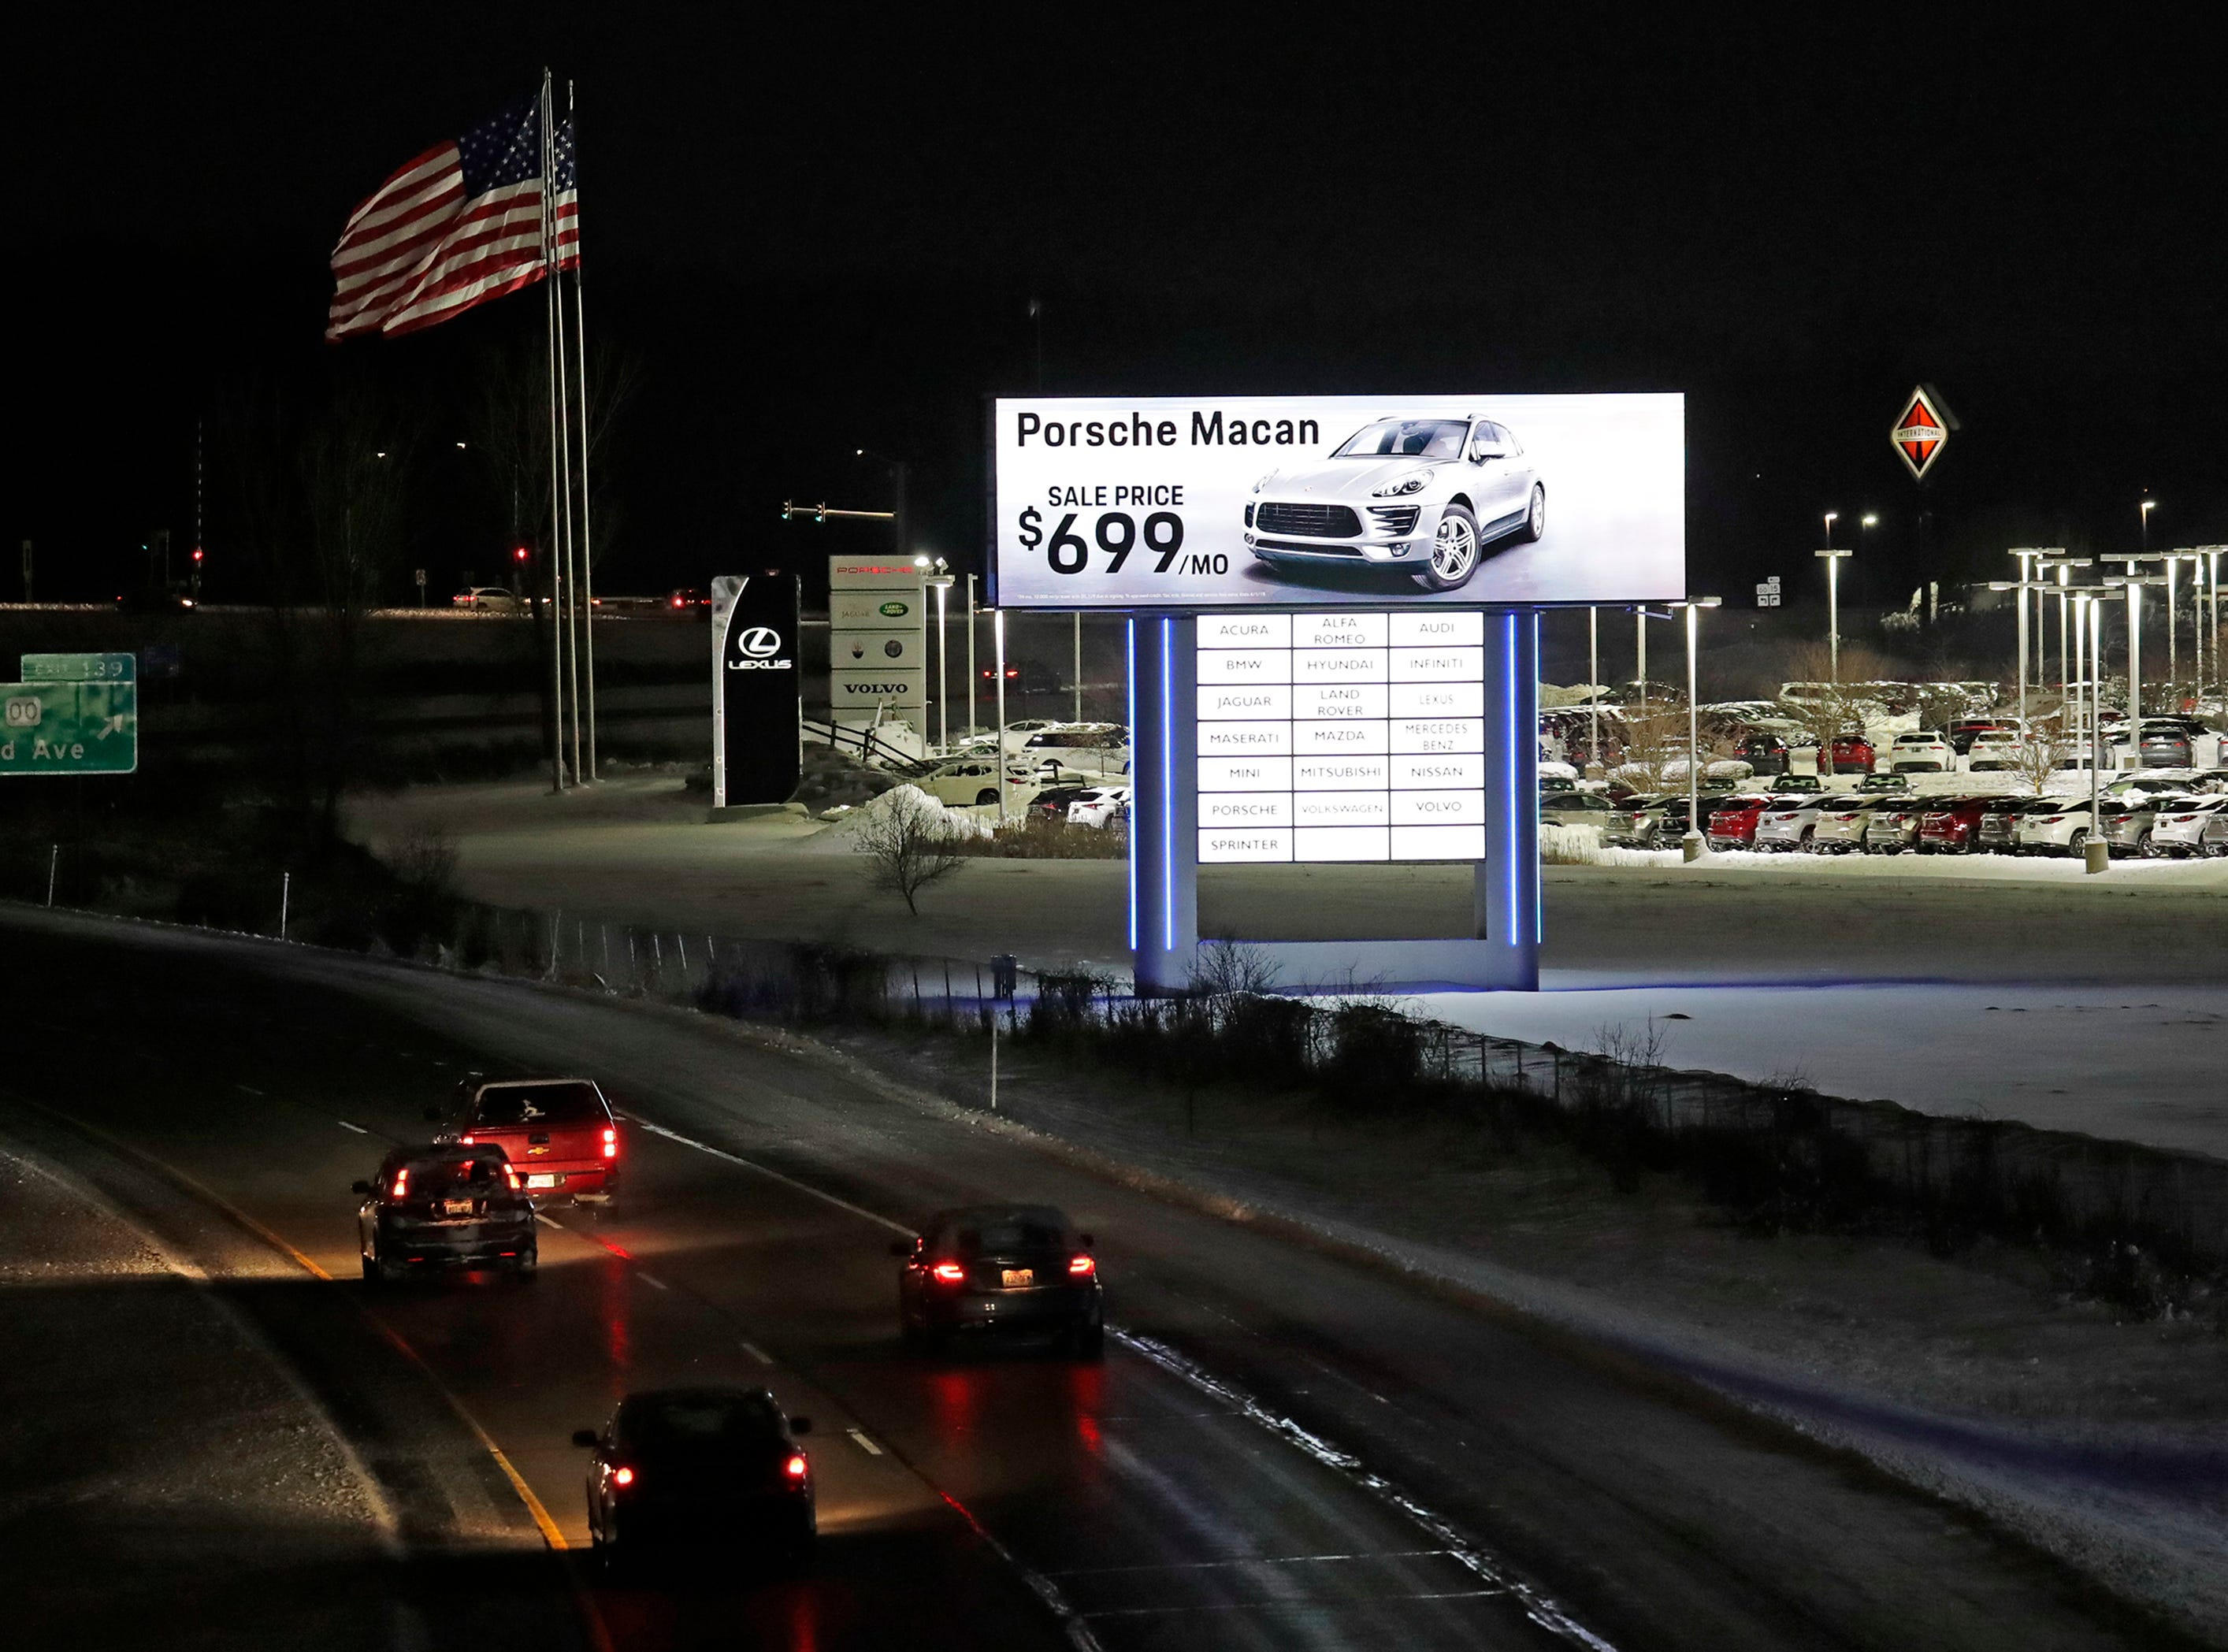 Bergstrom Automotive signs are illuminated along I-41 Wednesday, Jan. 23, 2019, in Grand Chute, Wis. The Department of Transportation says they violate state and federal law.